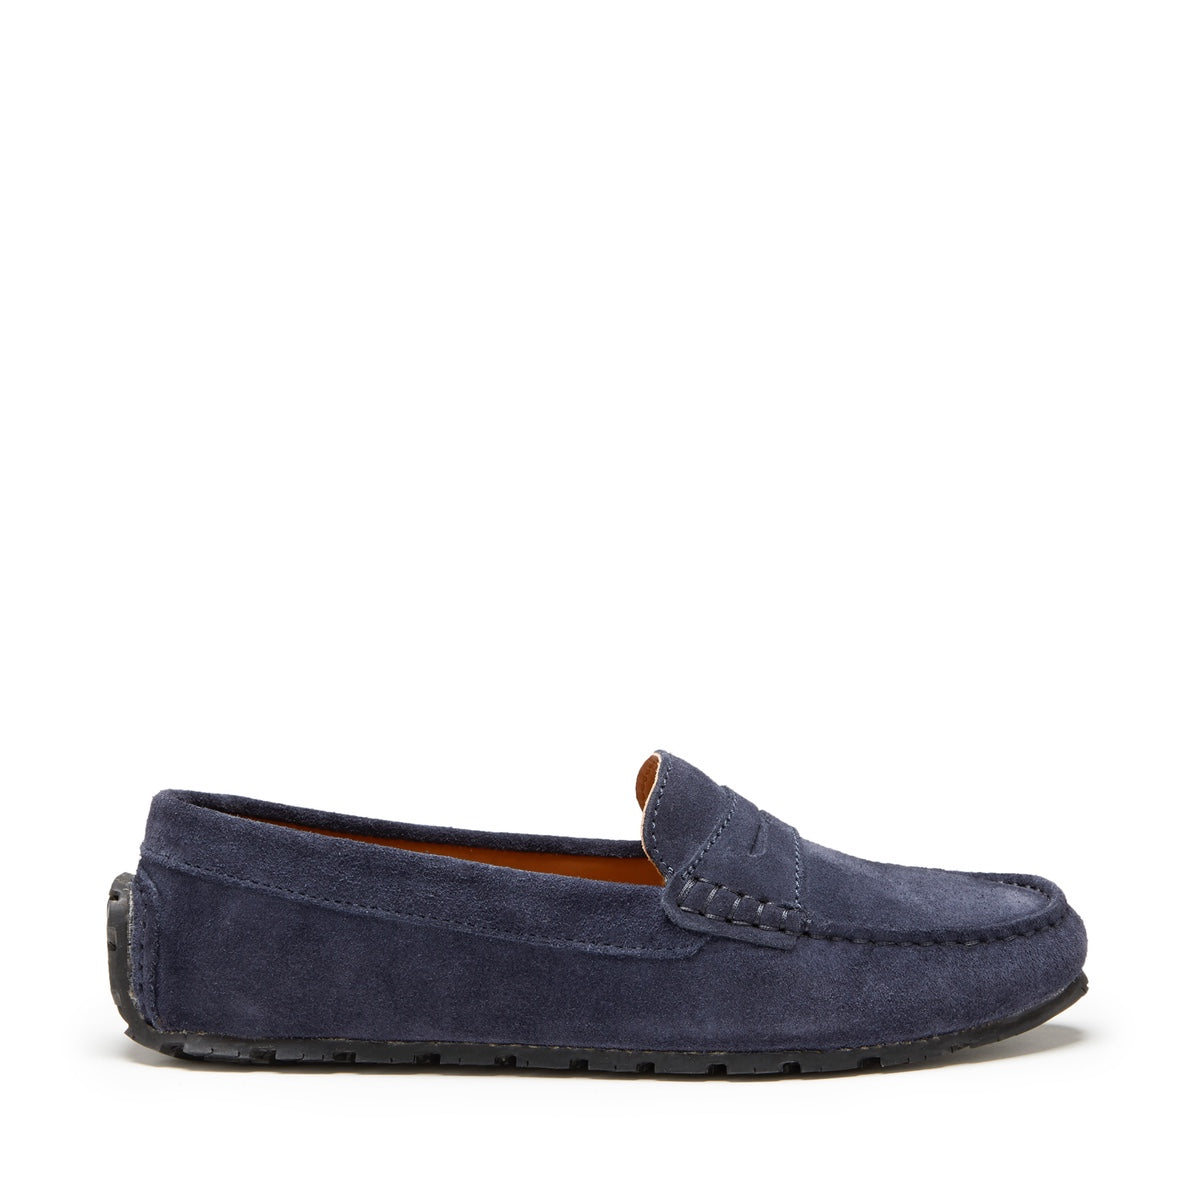 Women's Tyre Sole Penny Loafers, navy blue suede